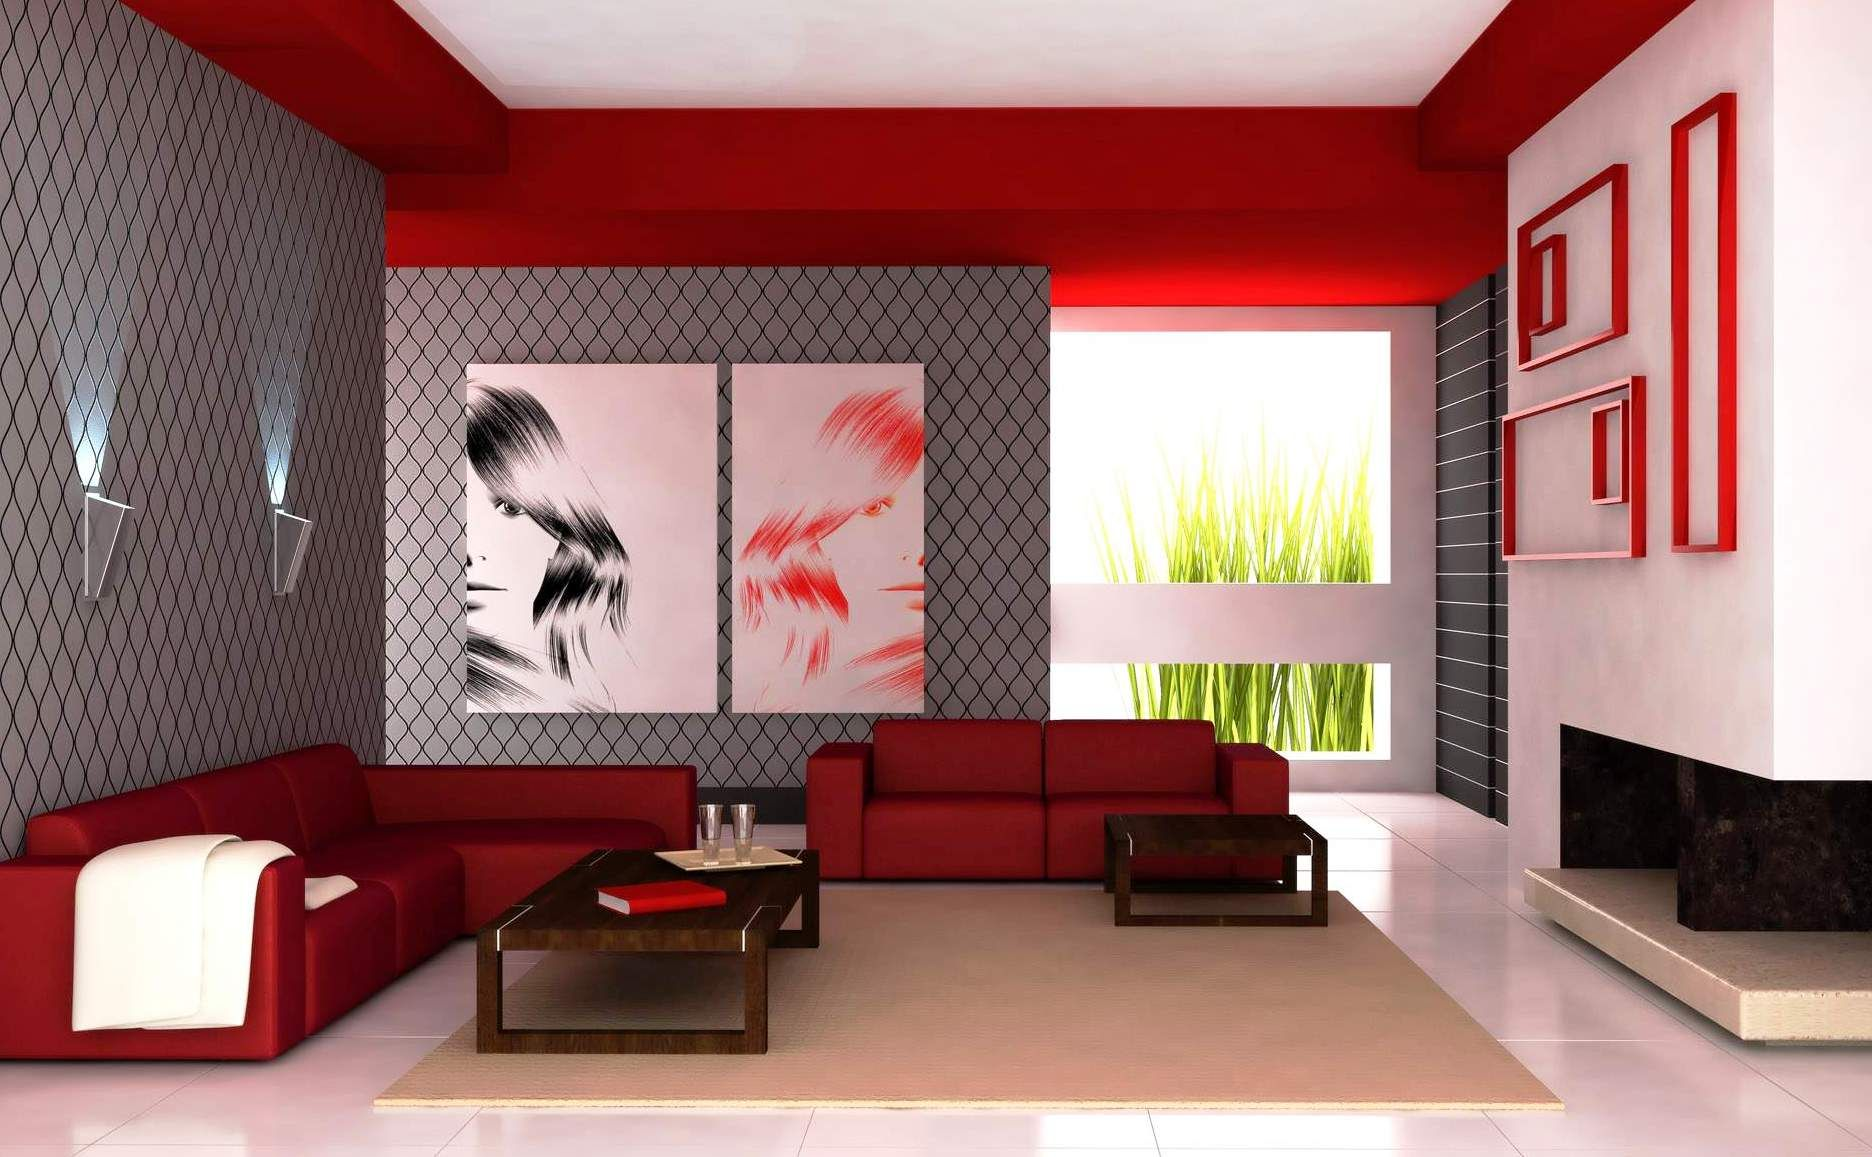 Gray And Red Living Room Interior Design Salon Waiting Area  Google Search  Cinema Room  Pinterest